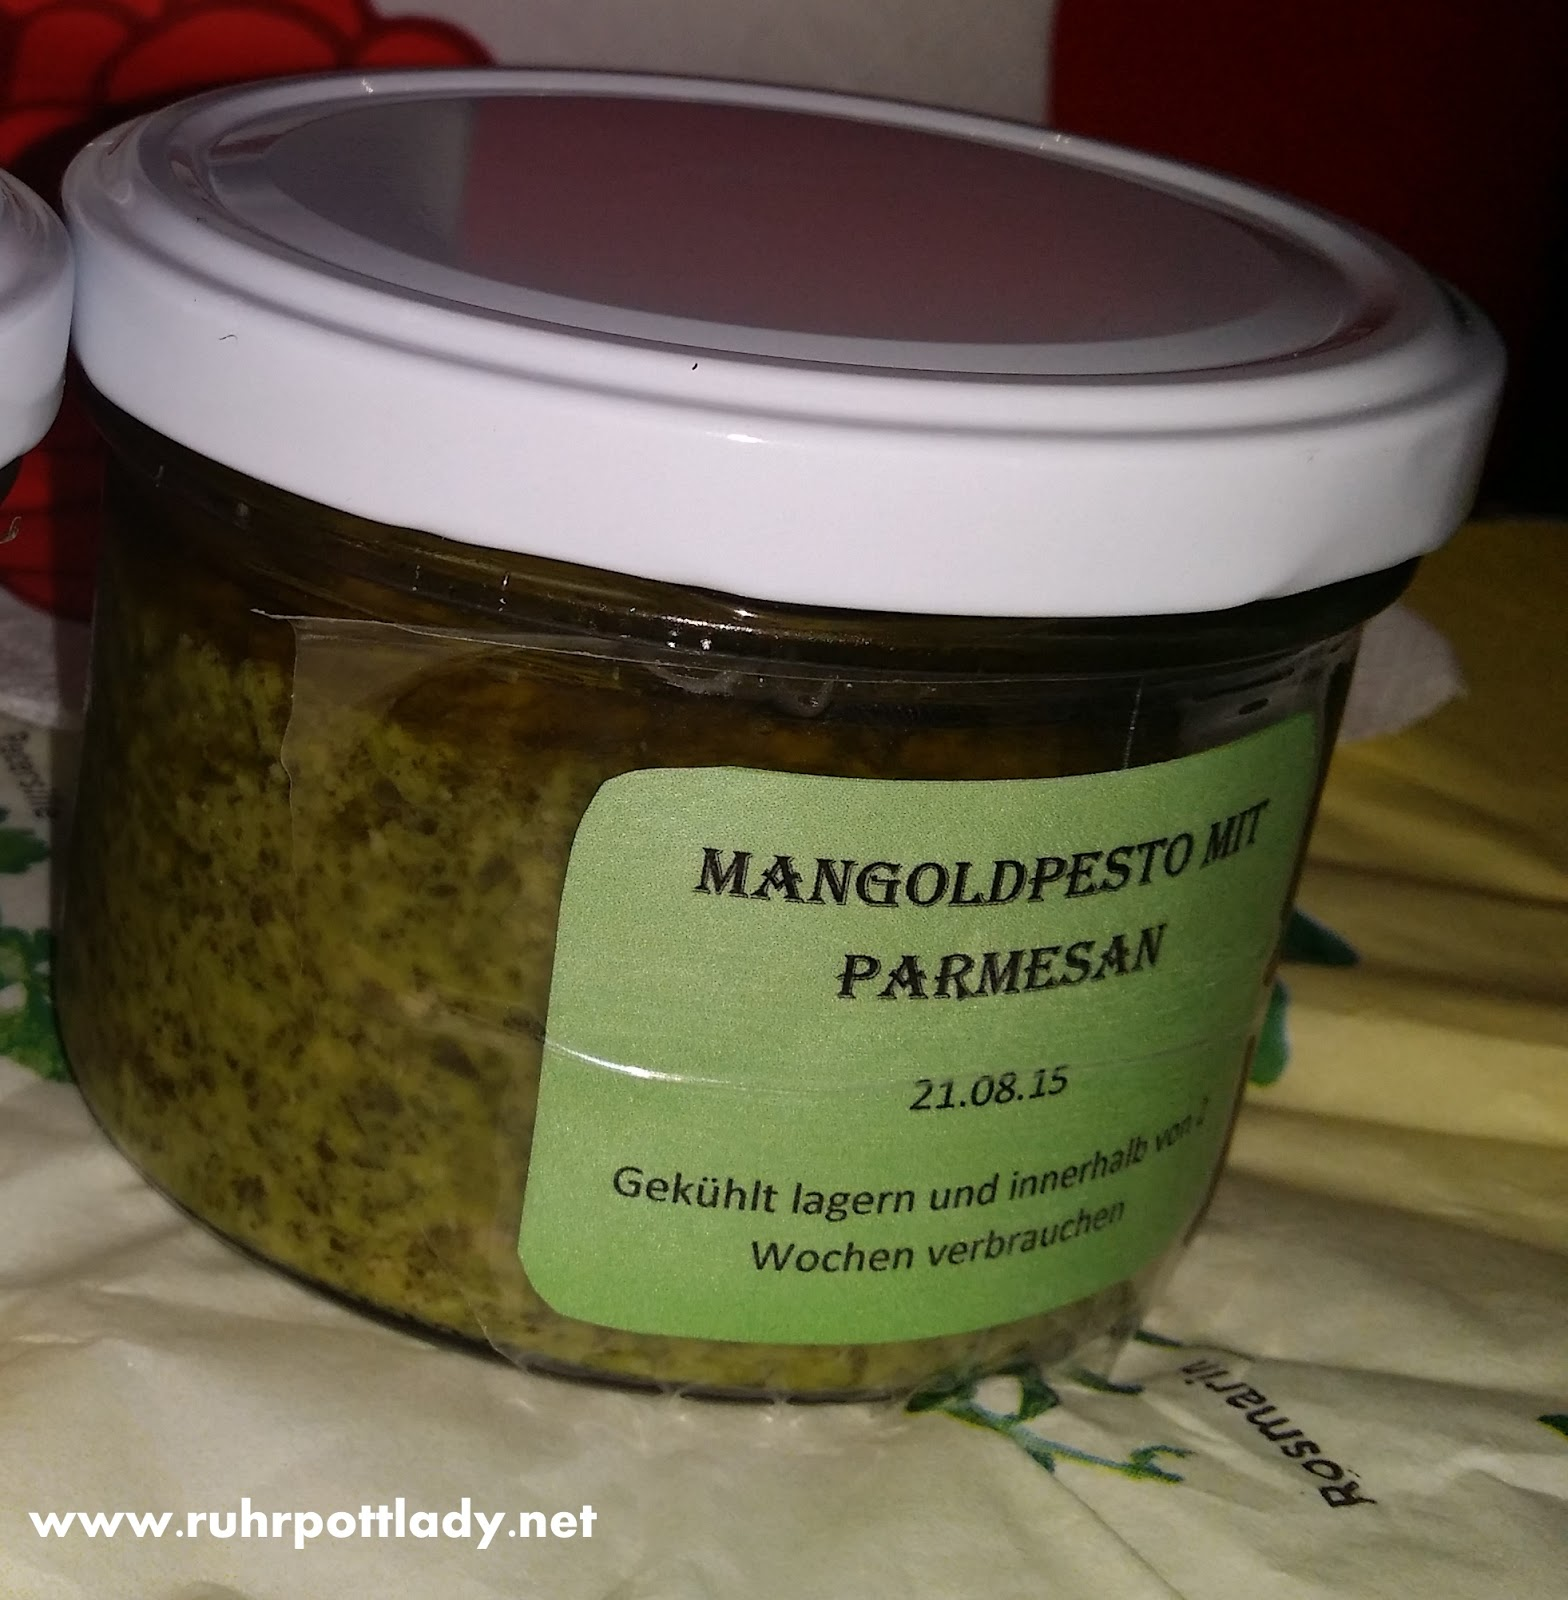 rezept mangold pesto mit parmesan. Black Bedroom Furniture Sets. Home Design Ideas